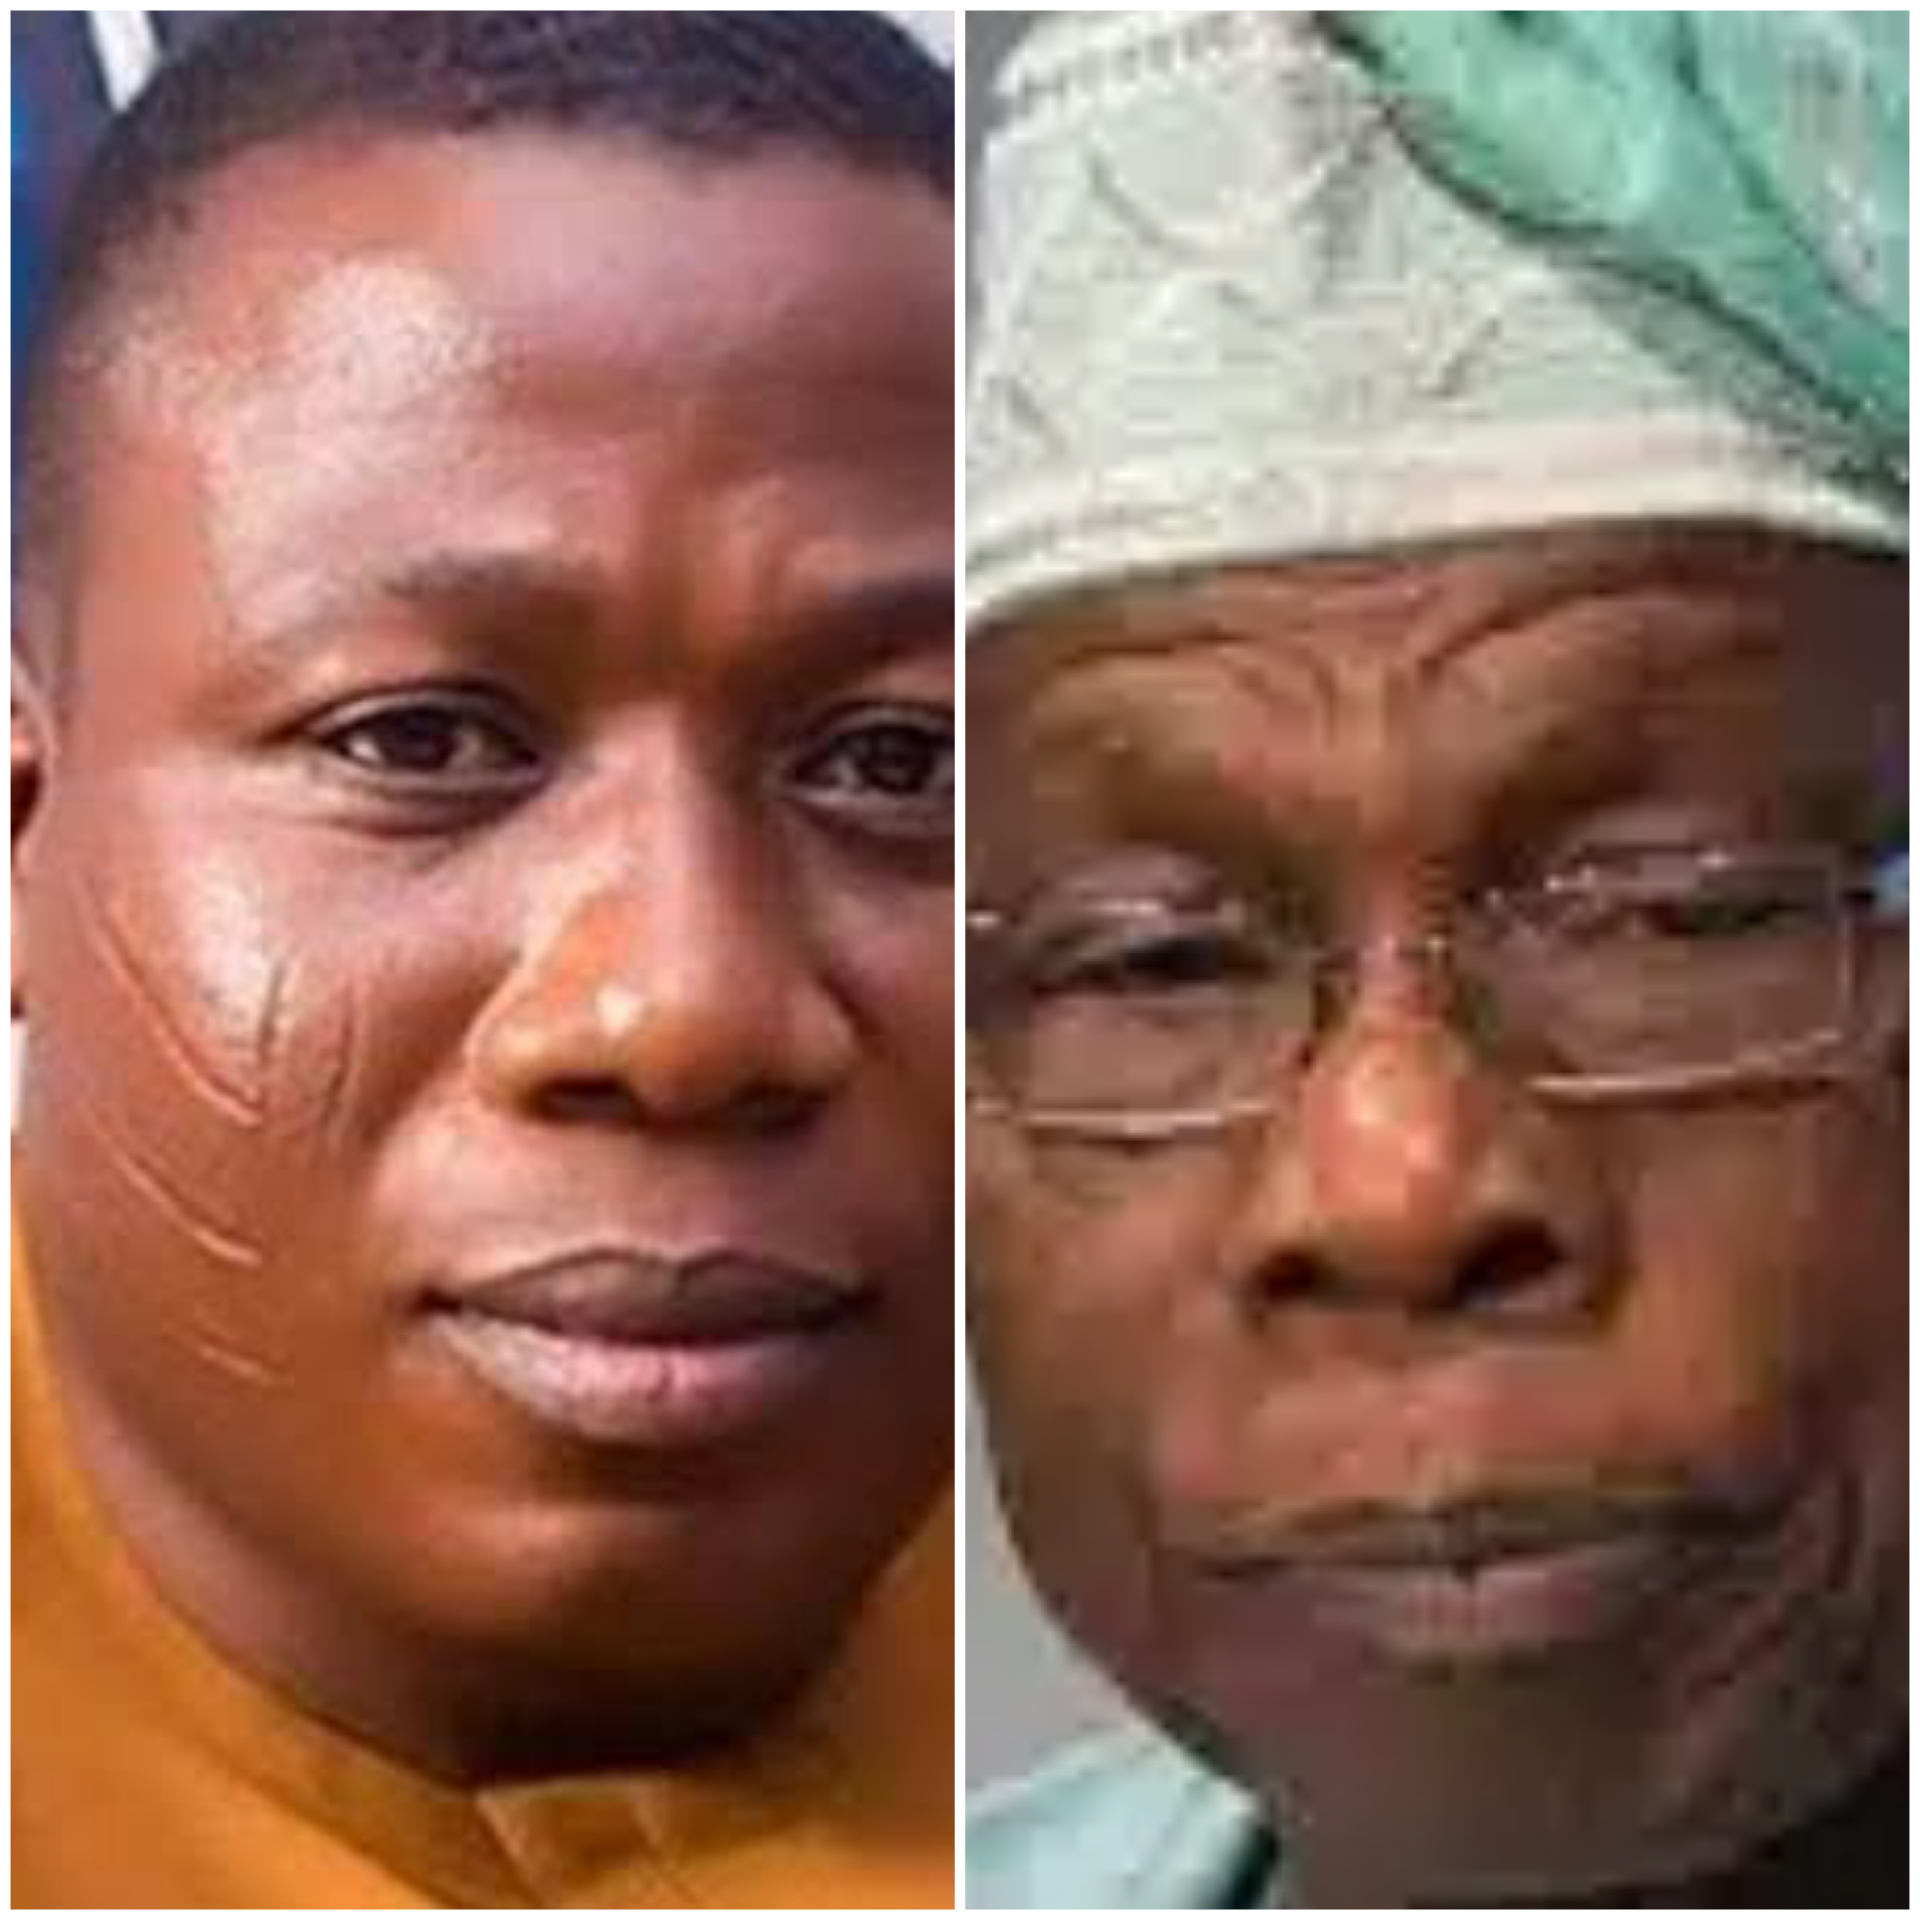 .According to reports, former President Obasanjo met with the president of Benin on Sunday to discuss Igboho's case